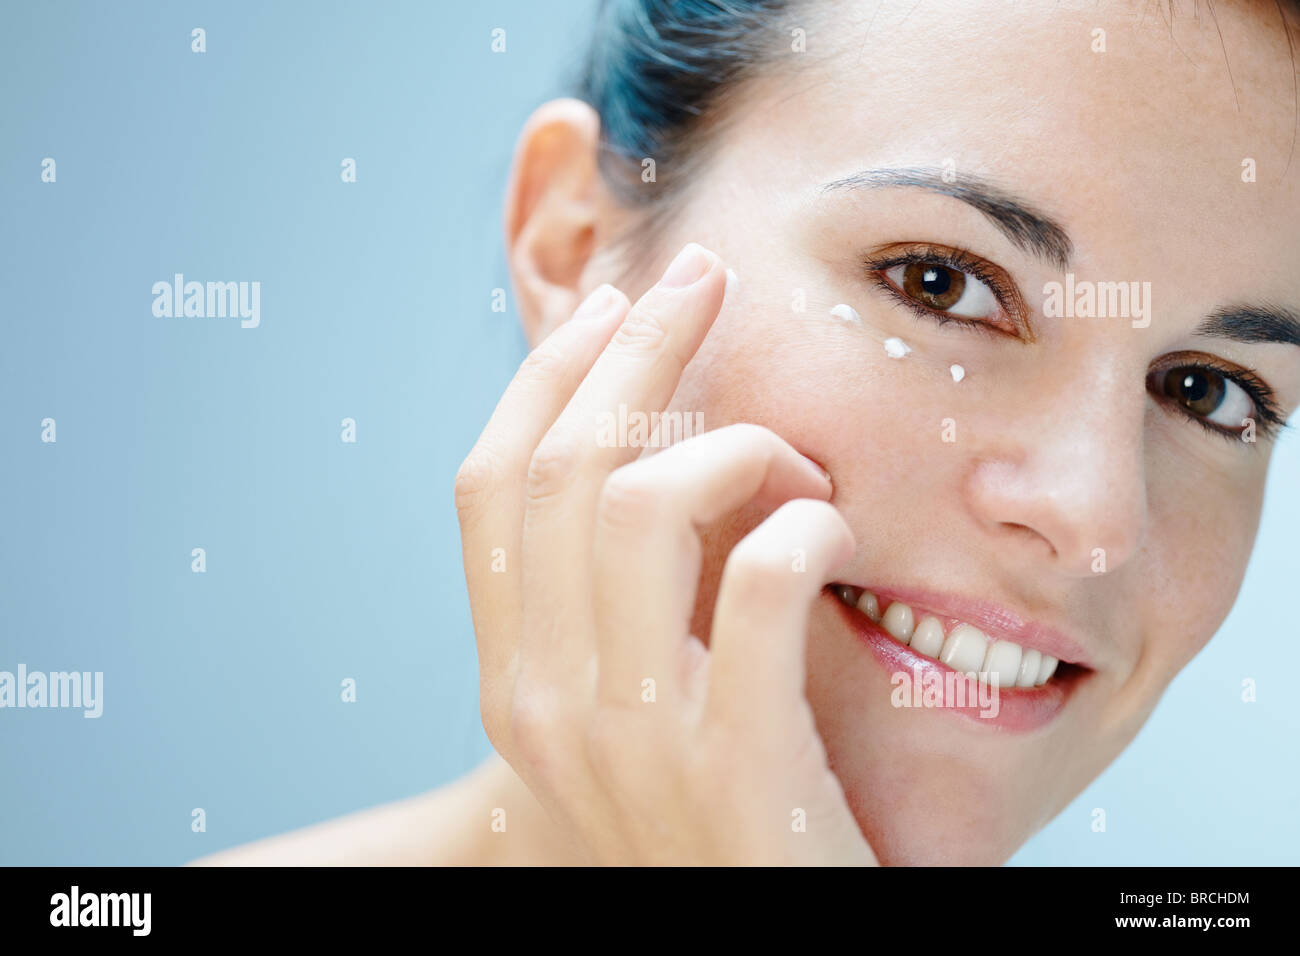 Woman applying eye cream Photo Stock